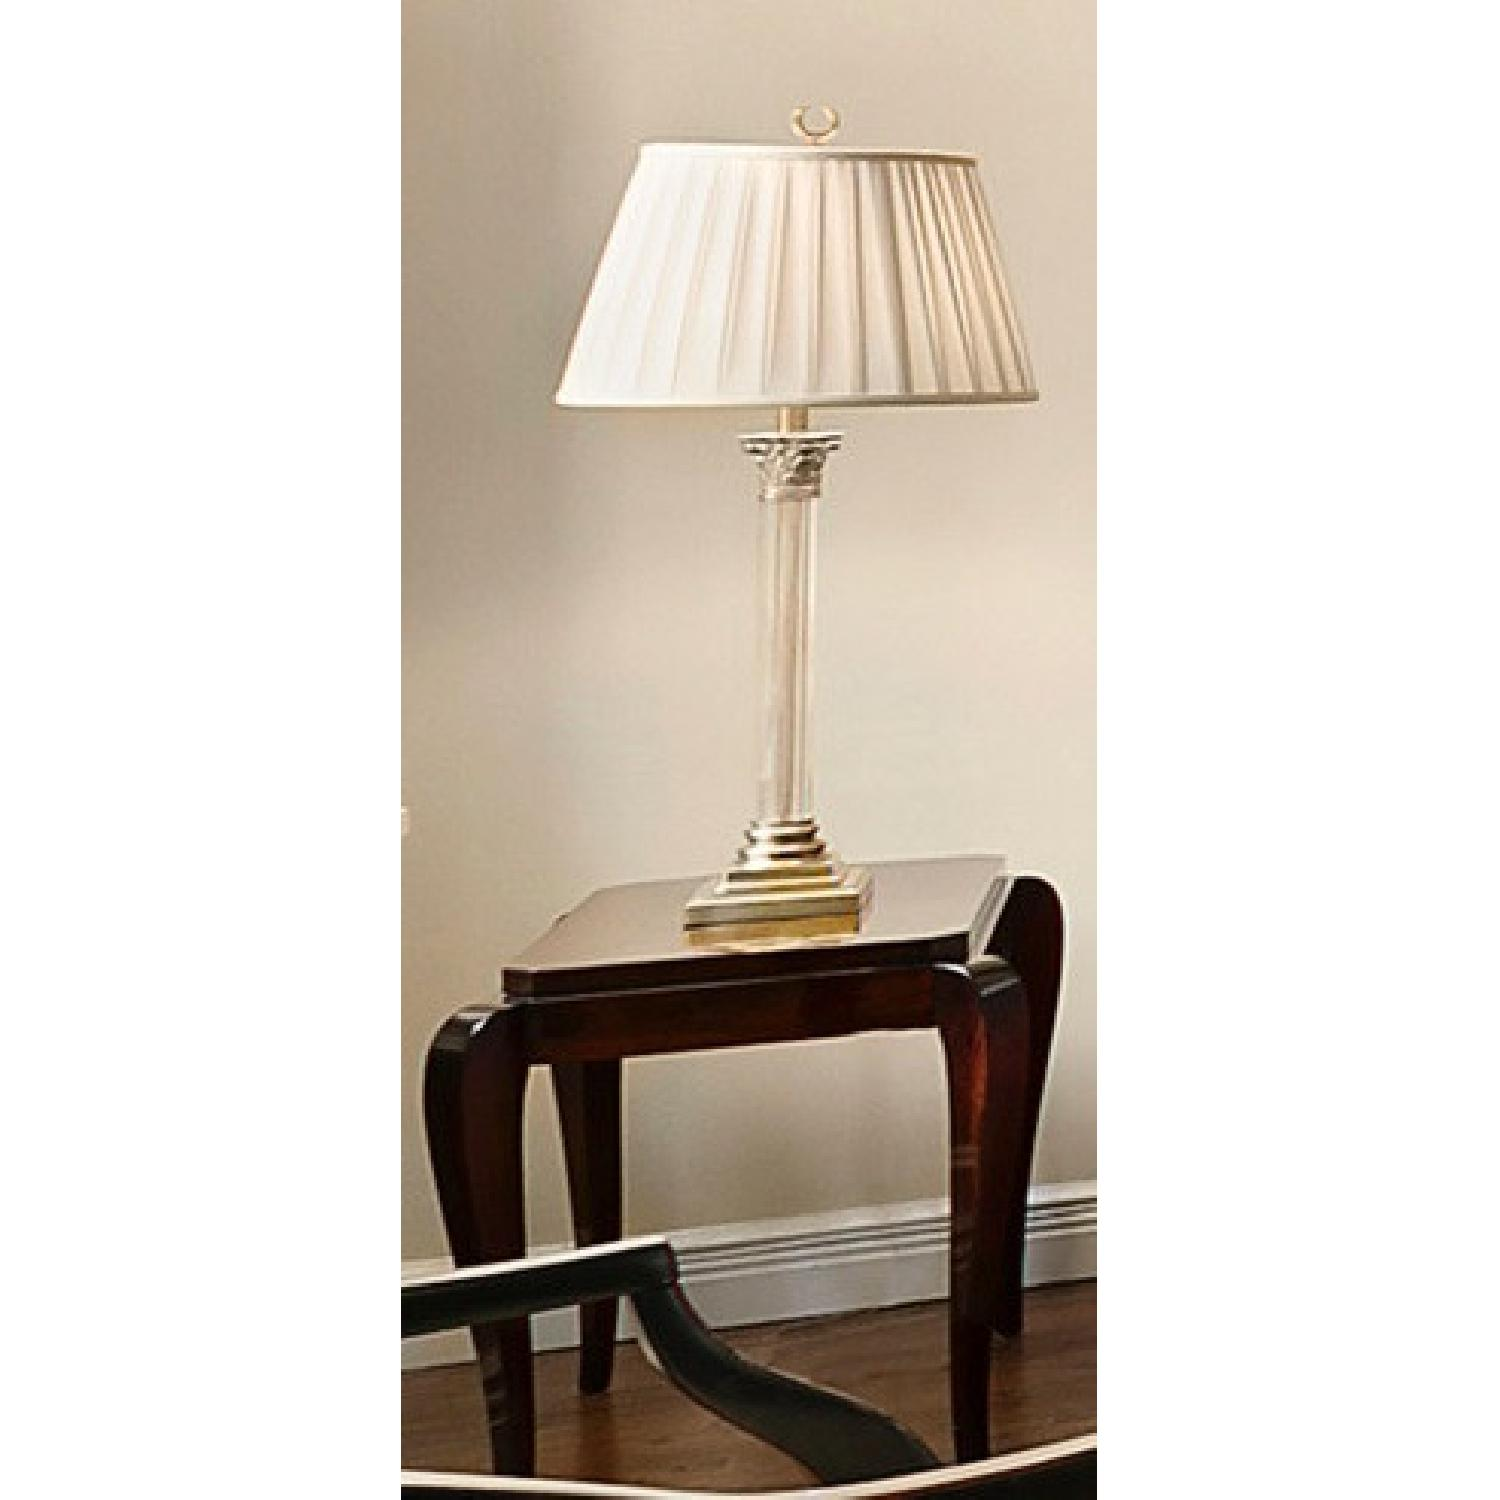 Gracious Art Deco Side Table w/ Tapered Legs - image-3